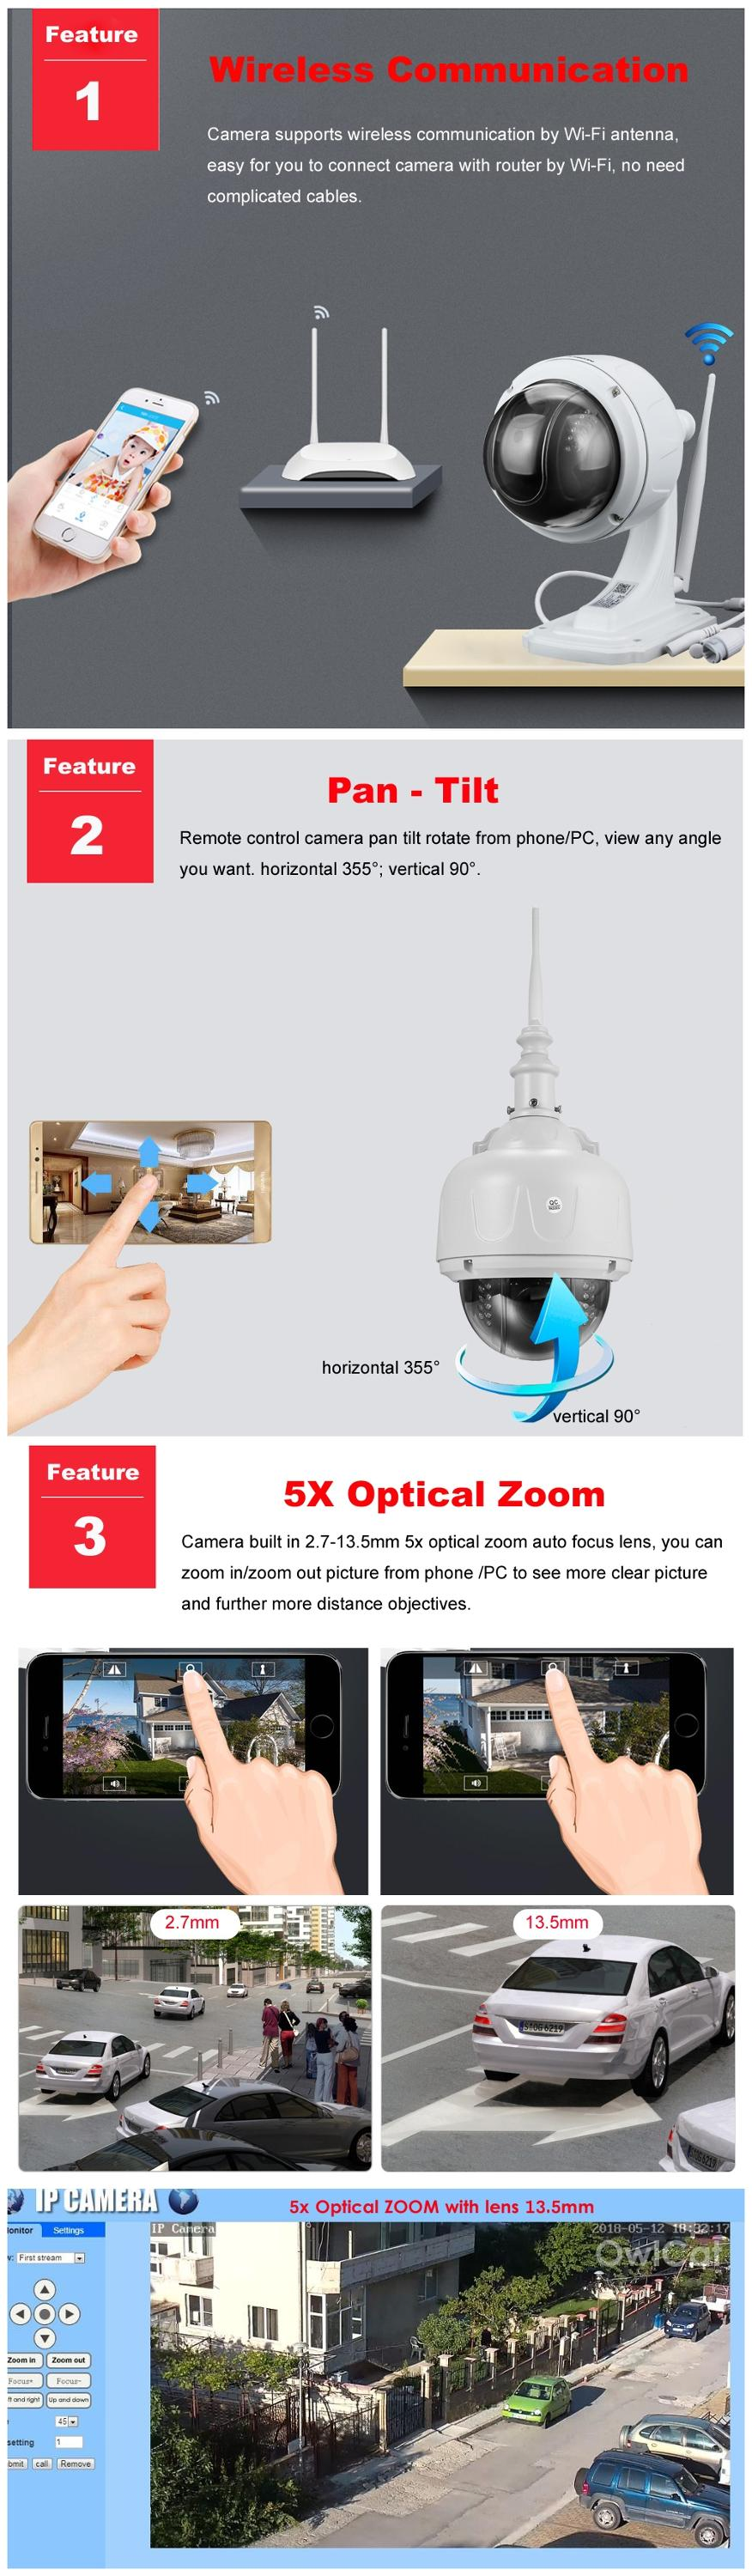 Sd13w Outdoor Mini Ball Cctv Camera Ip66 Waterproof 5x Zoom Ptz Rotation  960p Hd Video - Buy Mini Ball Cctv Camera,Ball Cctv Camera,720p Hd Cctv